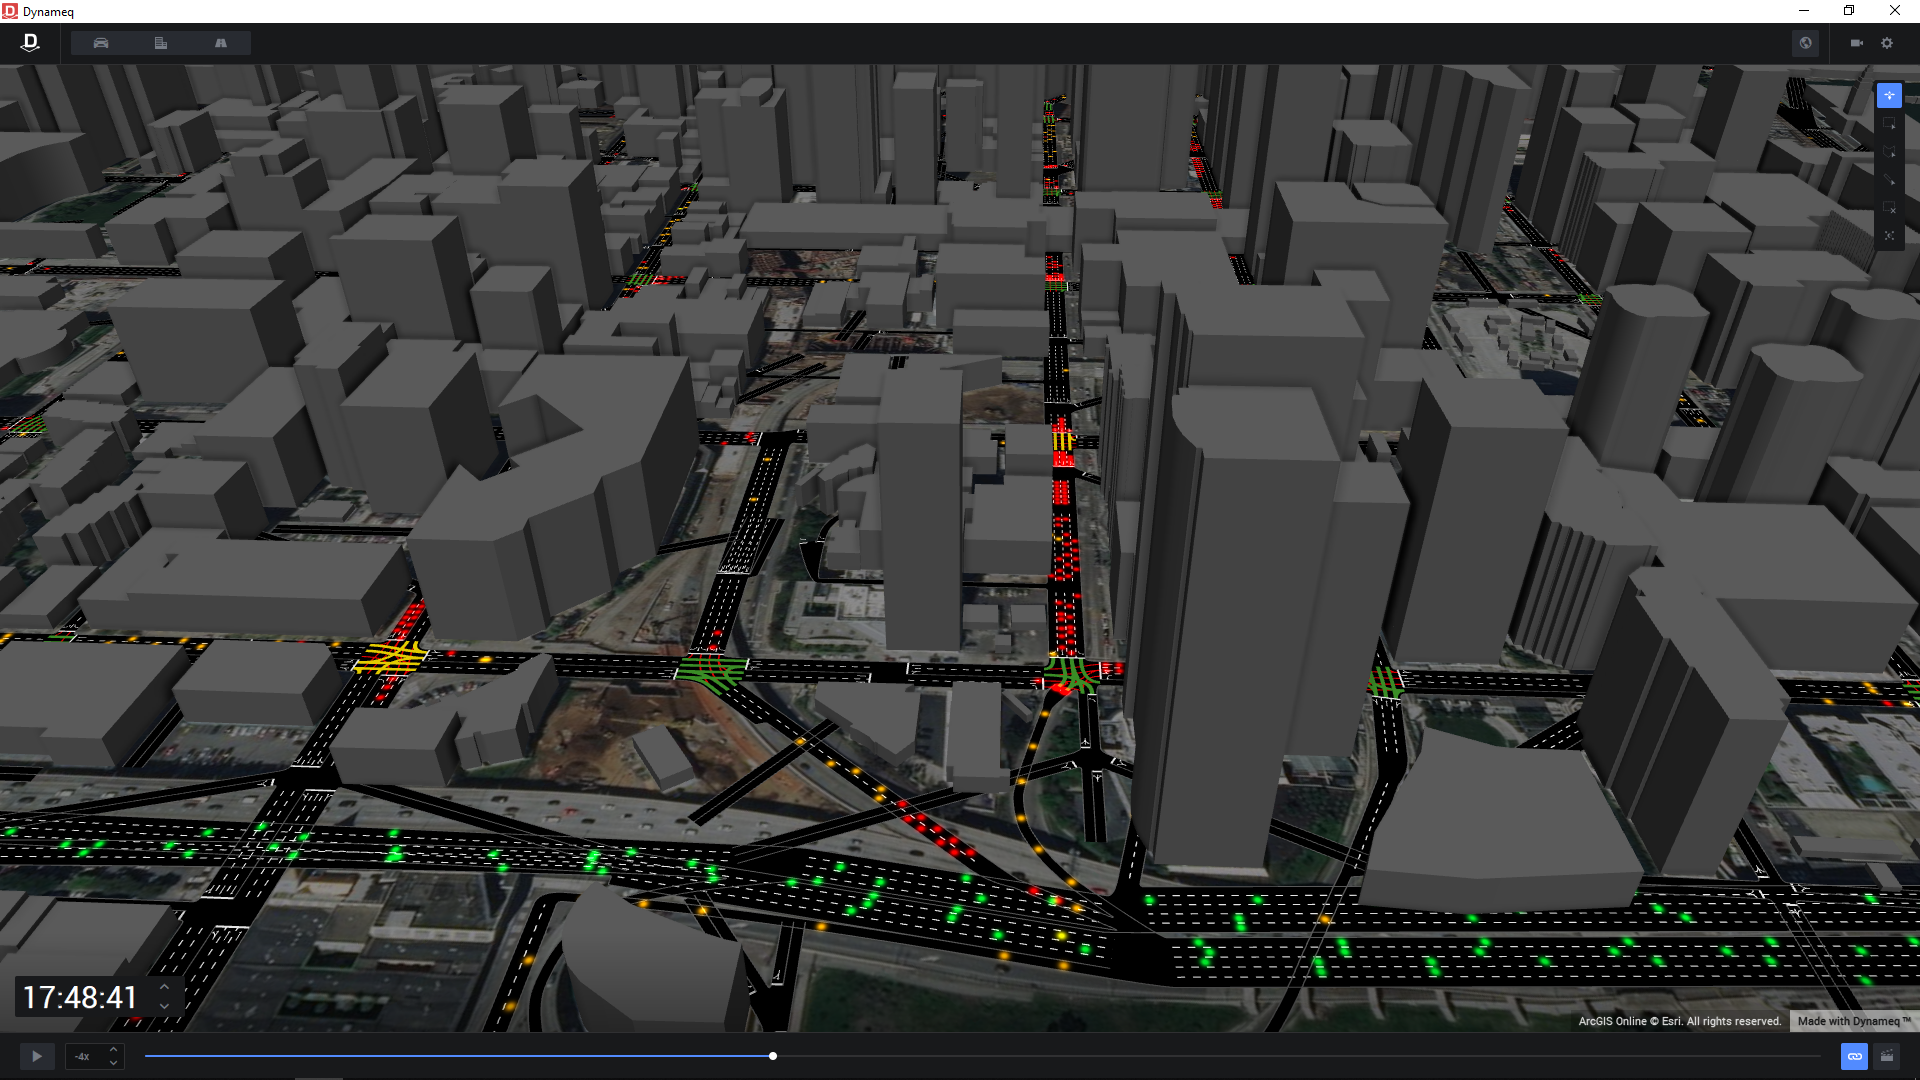 Dynameq City-Scale Traffic Simulation Software